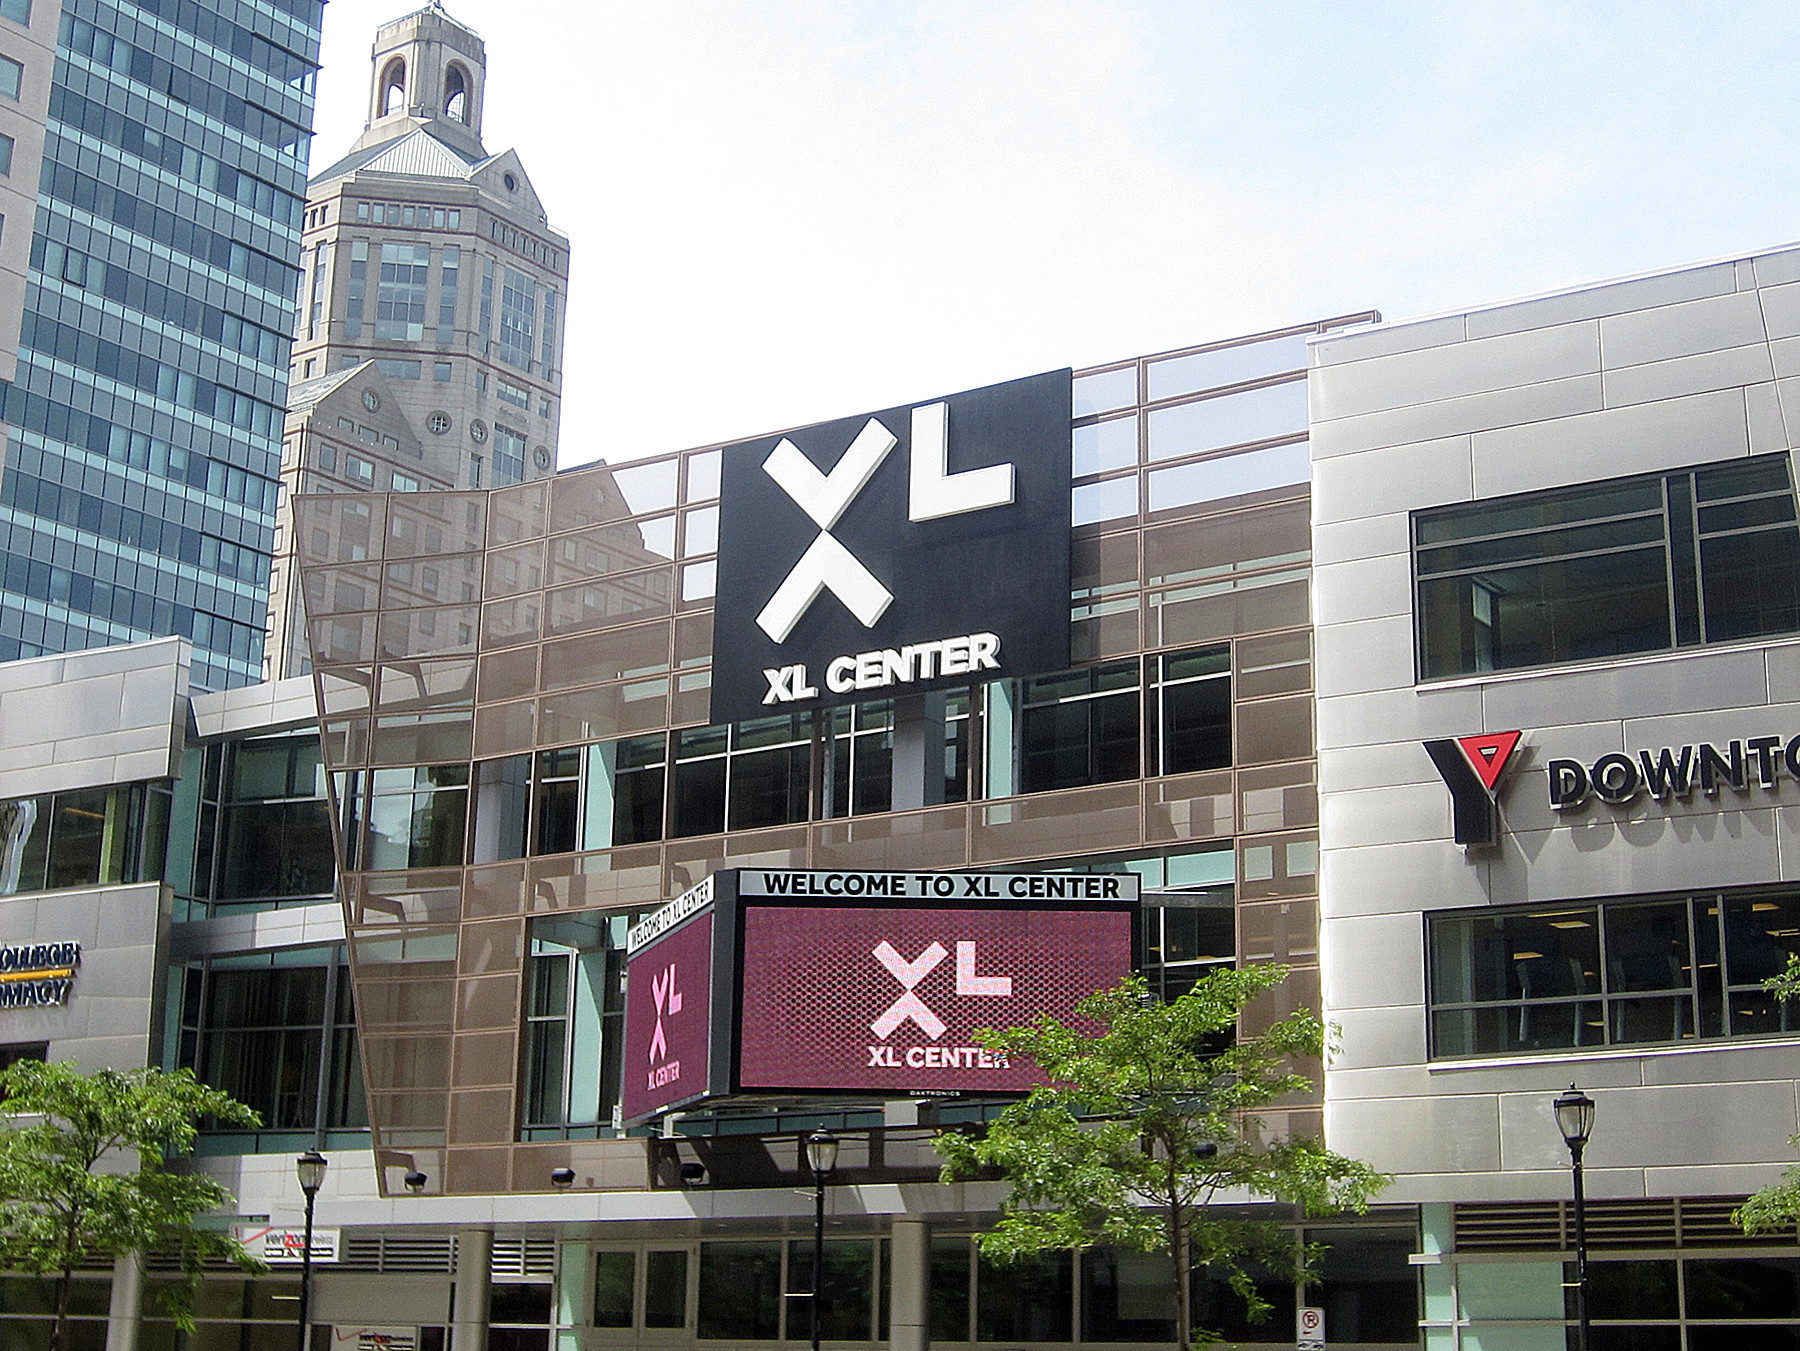 Xl center renovation updates hartford wolf pack - Development Authority Votes To Pursue Xl Renovation Malloy Considers Funding Hartford Courant